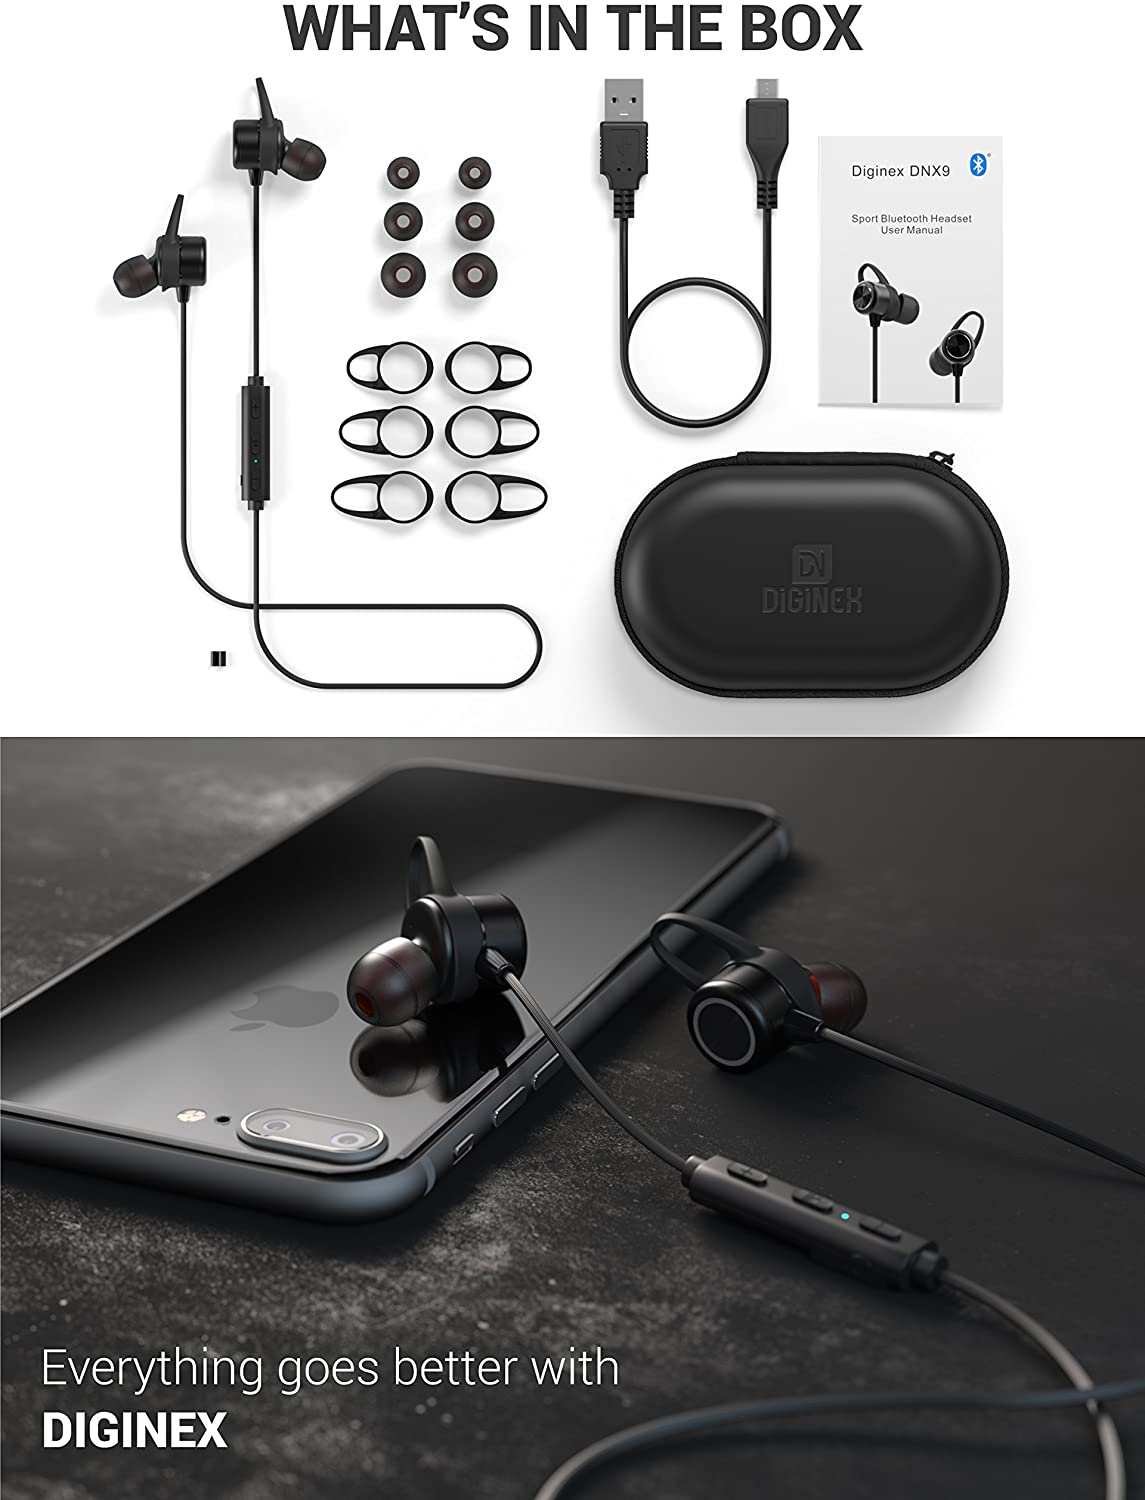 Black Diginex Bluetooth Earbuds Wireless Magnetic Headset Sport Earphones for Running IPX7 Waterproof Headphones 9 Hours Playtime High Fidelity Stereo Sound and Noise Cancelling Mic 1 Hour Recharge